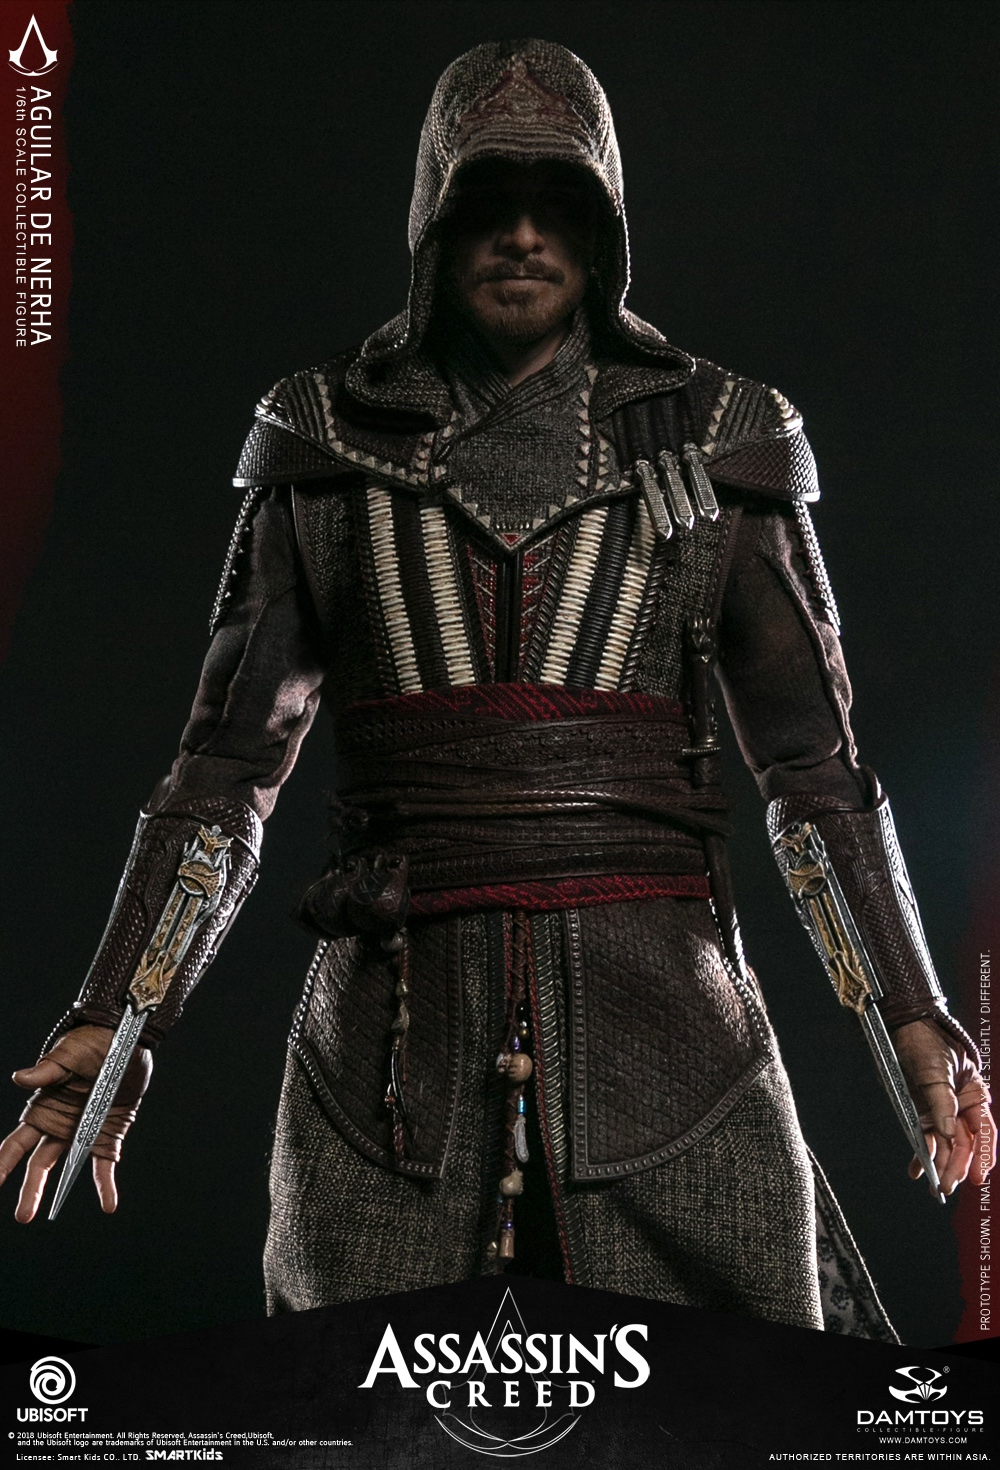 NEW PRODUCT: Damtoys–Assassin's Creed –1/6th scale Aguilar Collectible Figure Specifications 130155sbuavubhi8idnndz